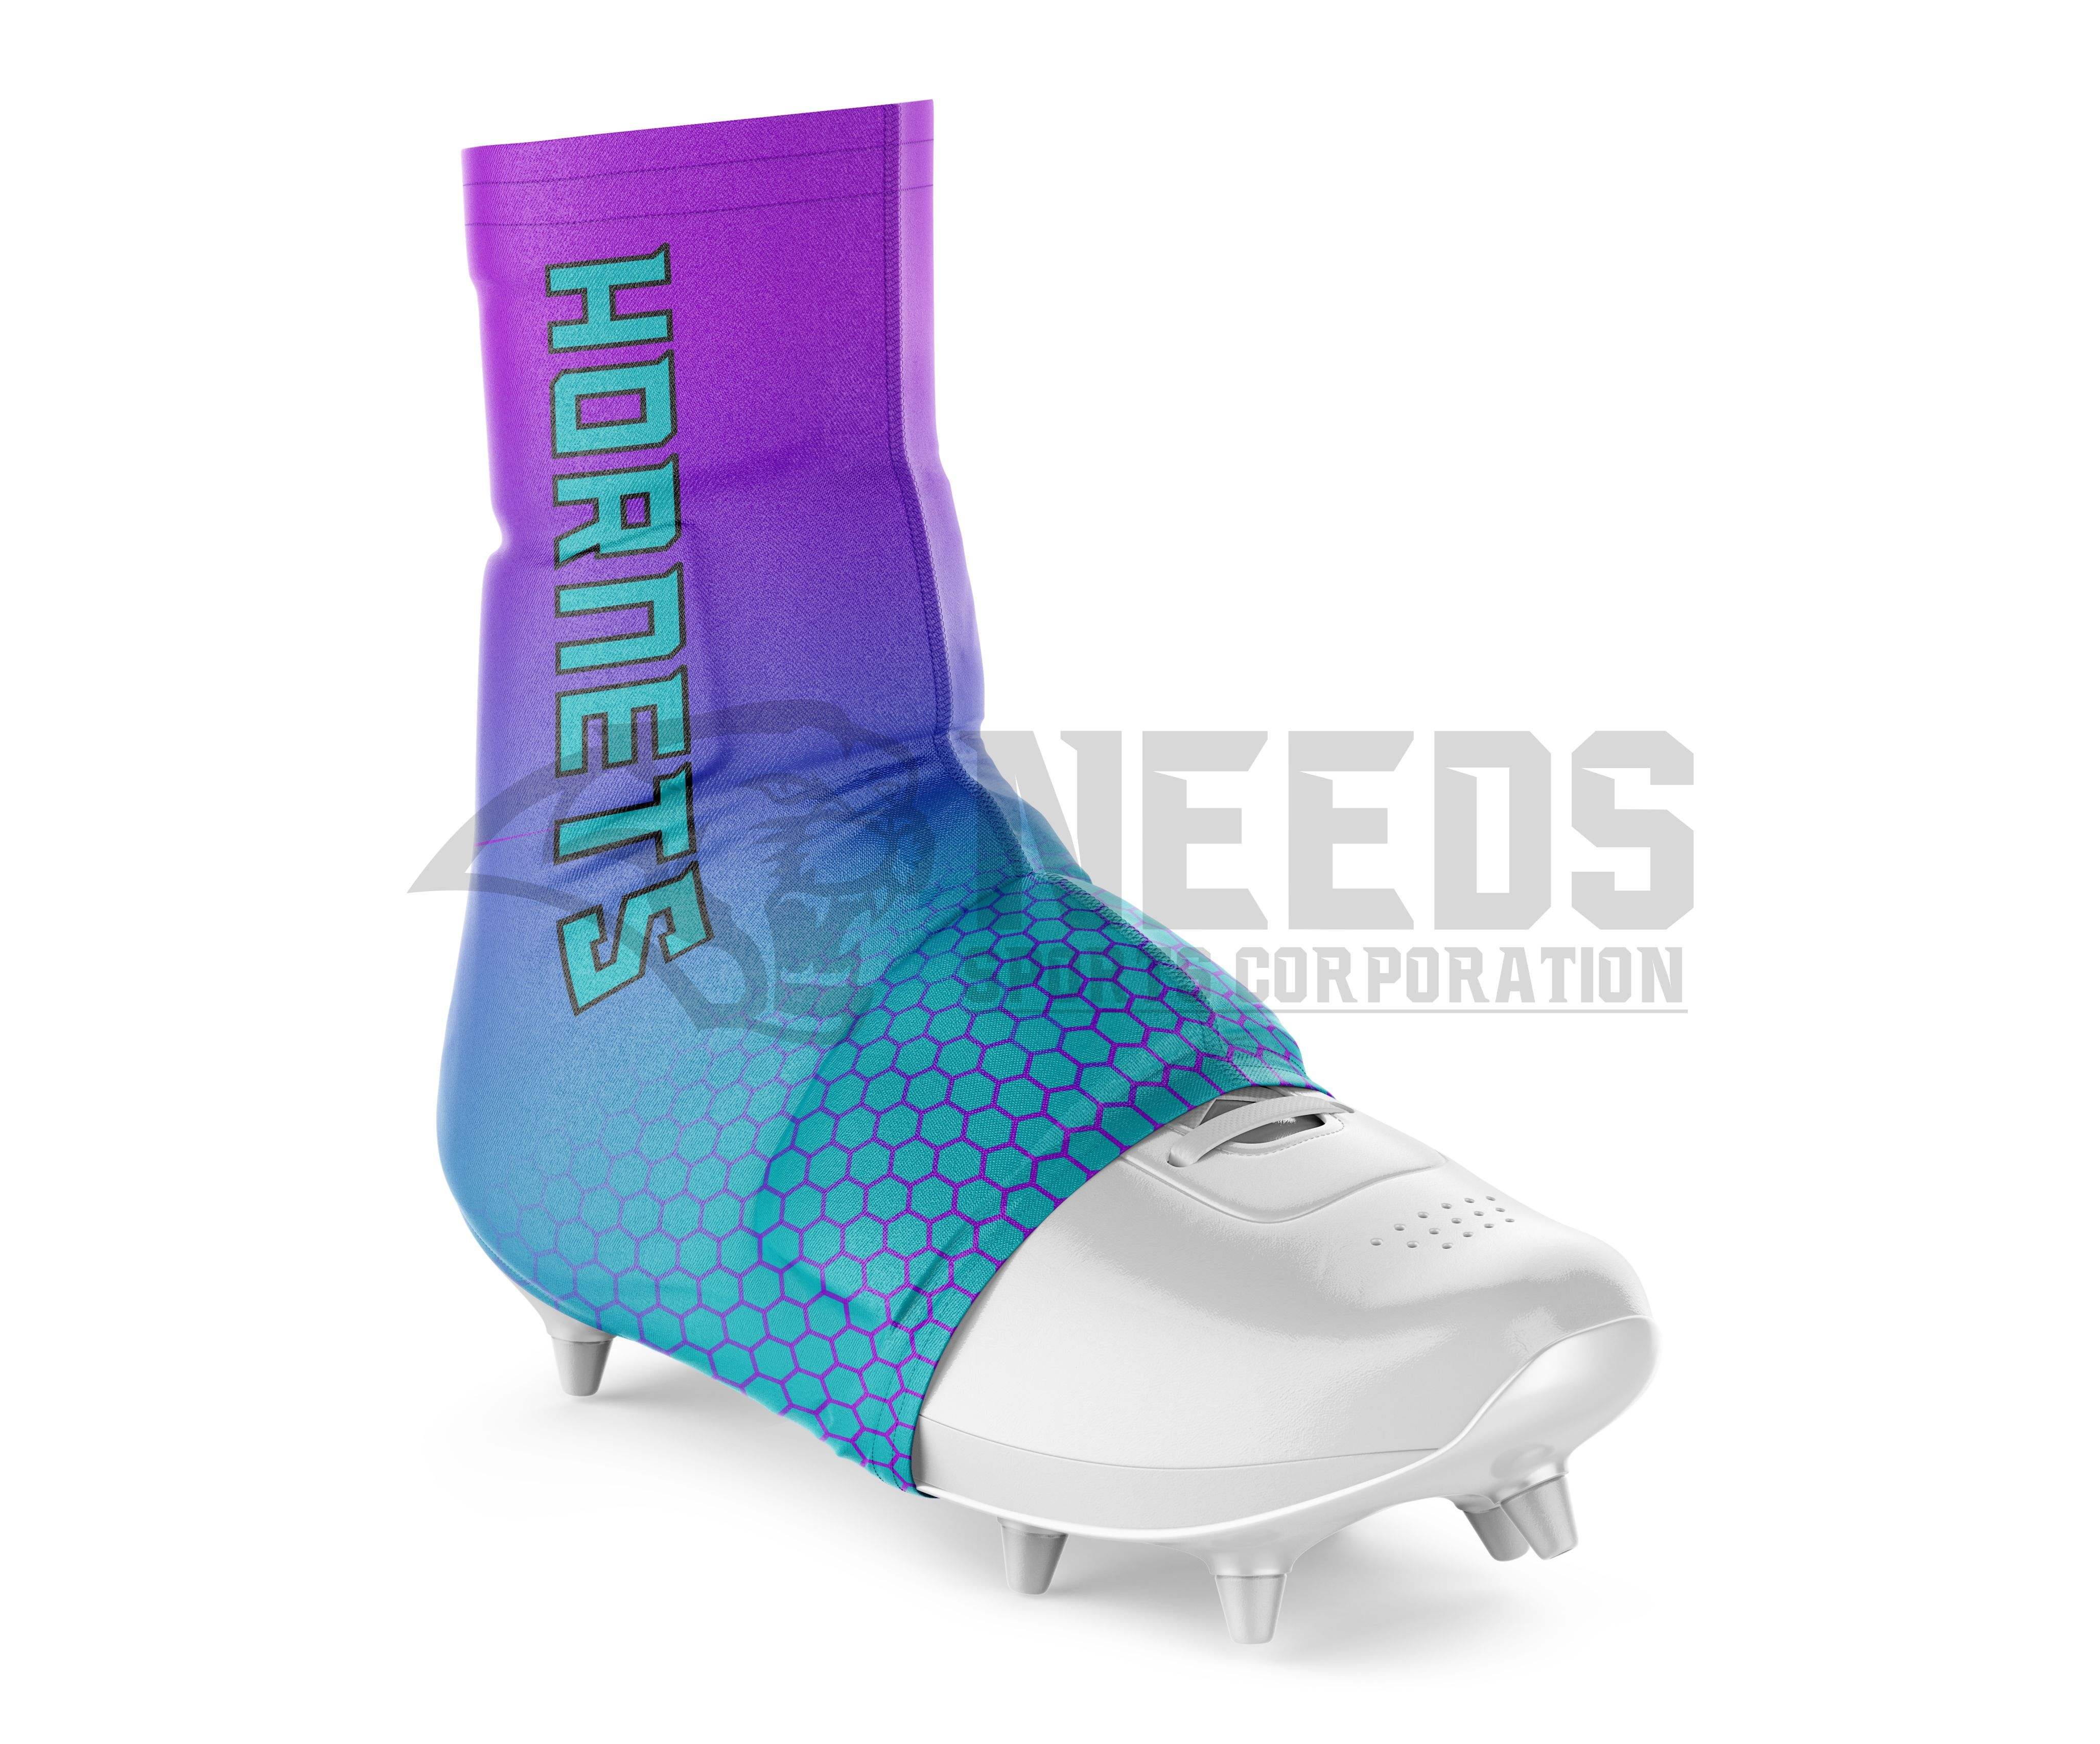 Top quality Custom Design American football spats, cleat covers